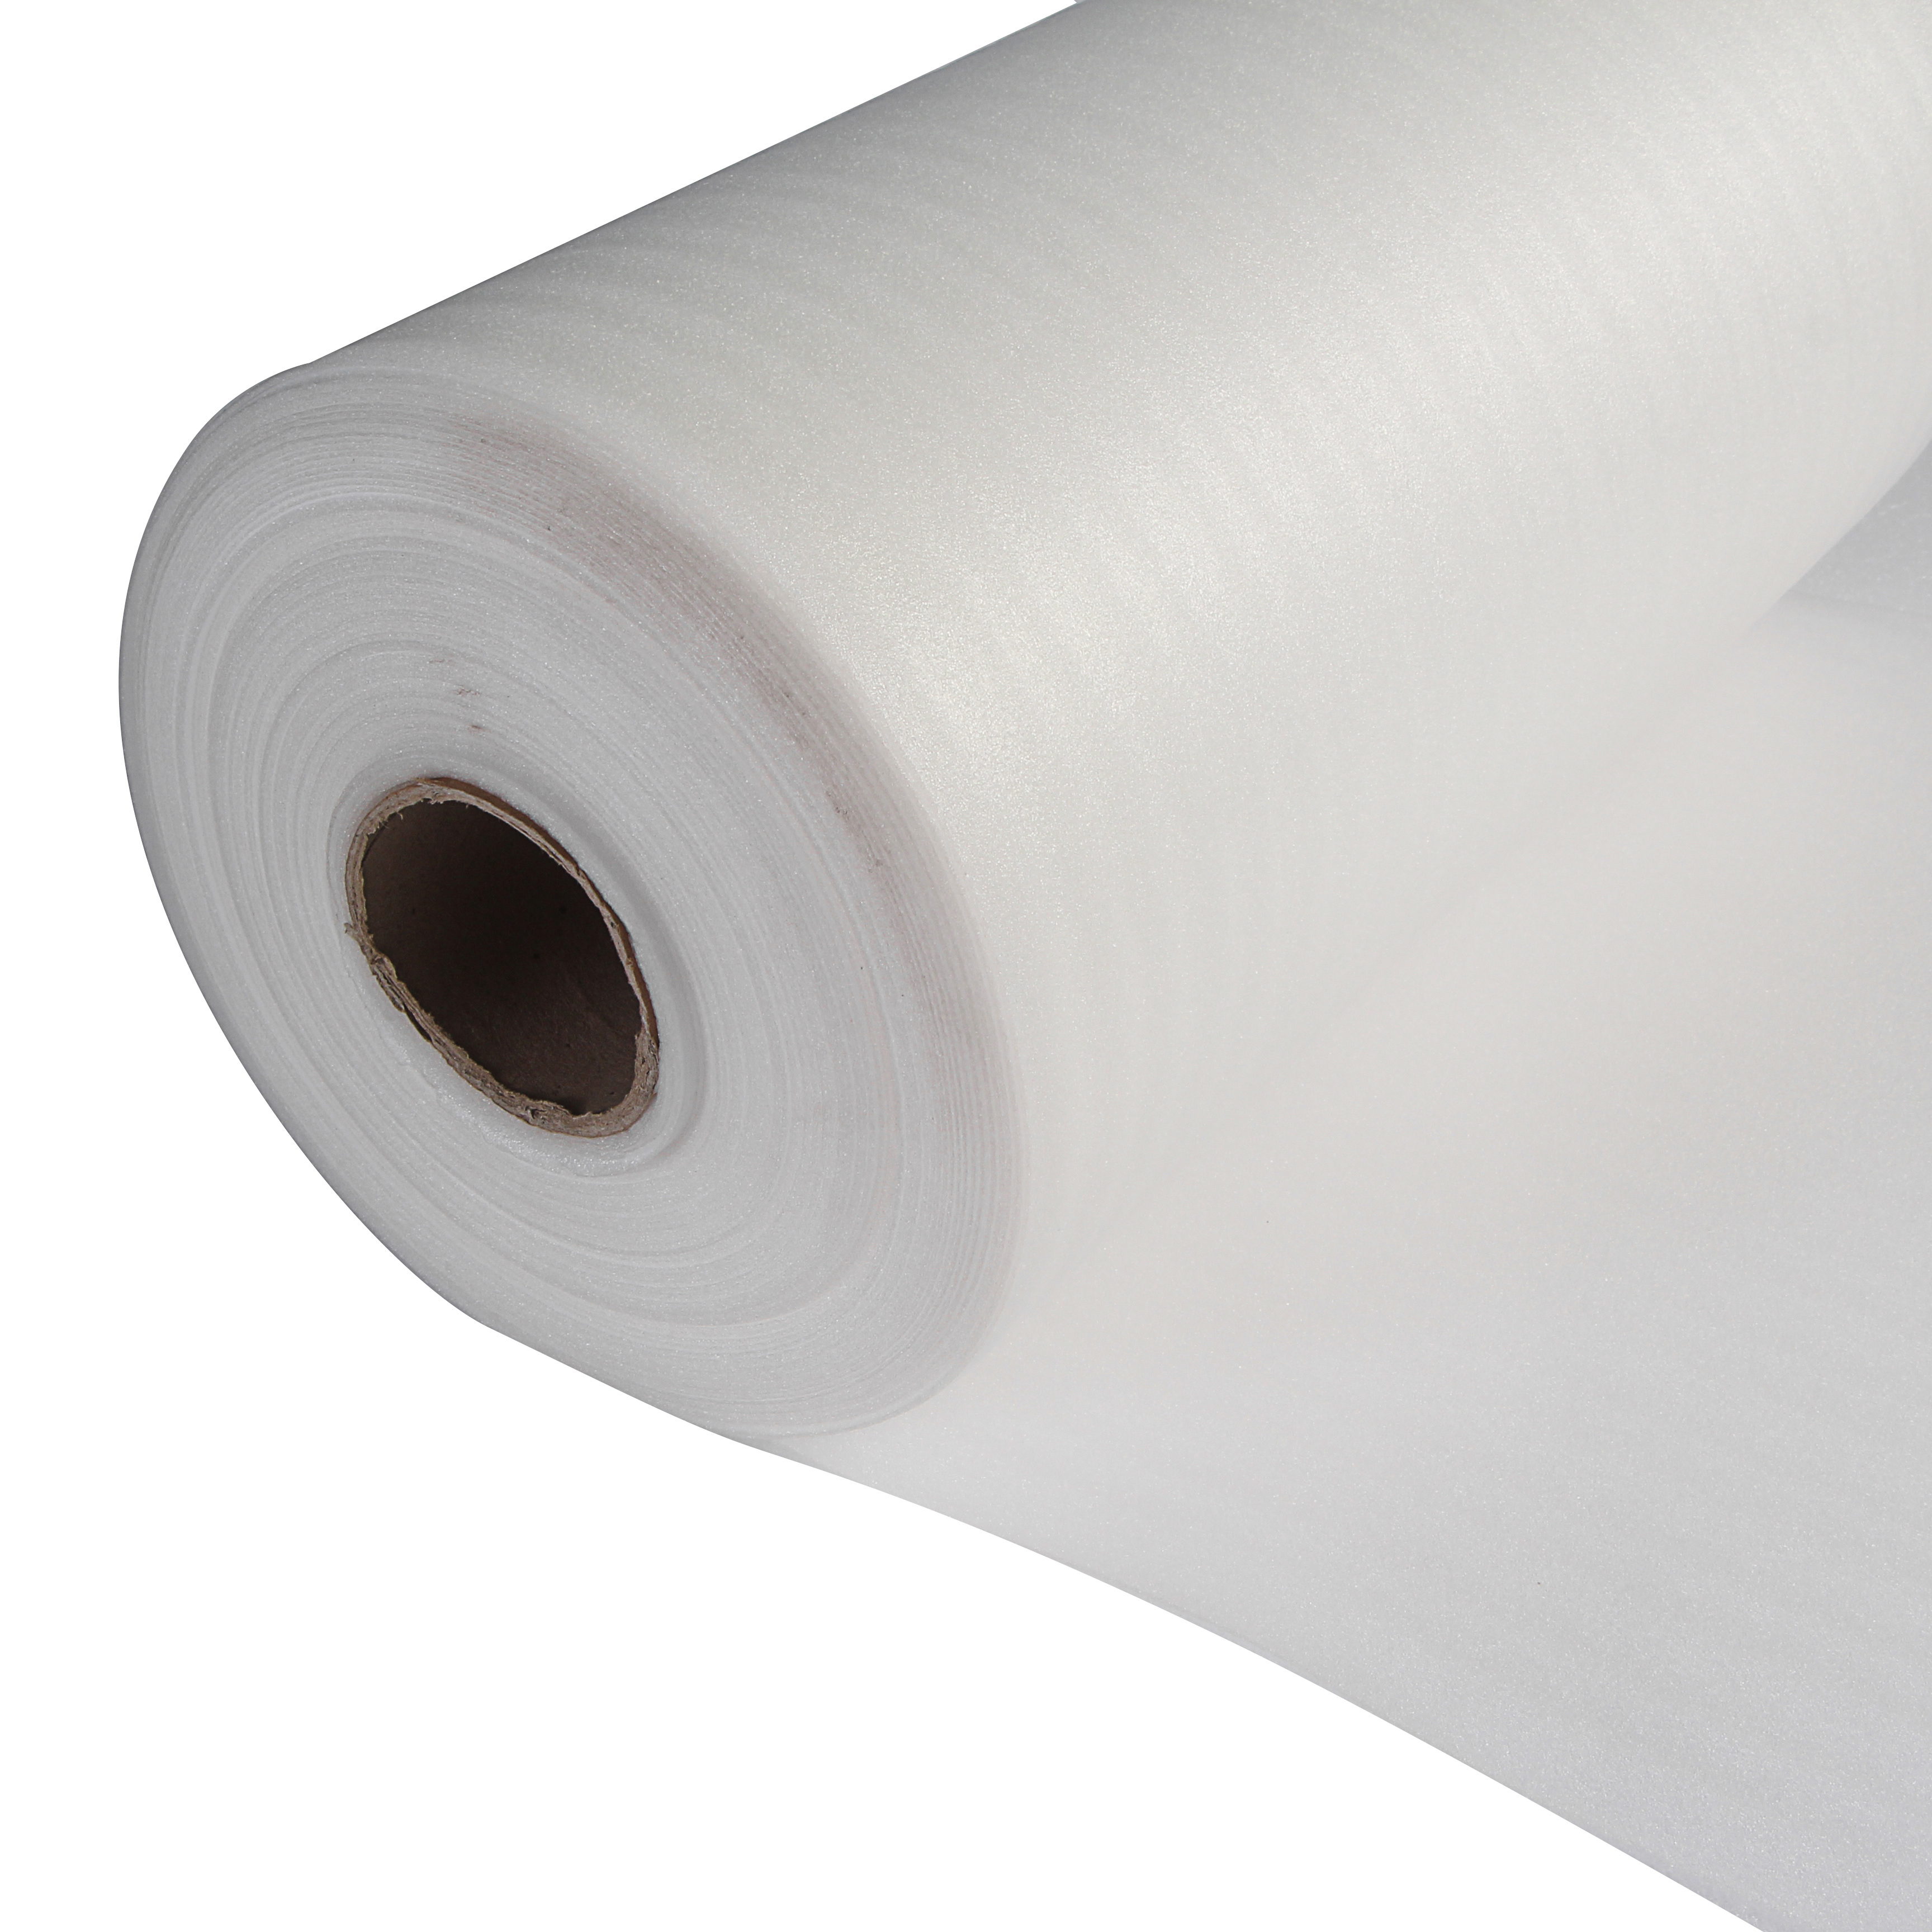 Thick Raw Material Epe Foam Sheet Eva Packing Foam Sheets For Thermal  Insulation Material Processing Foam Sheet Self Adhesive - Buy Epe Foam  Sheet